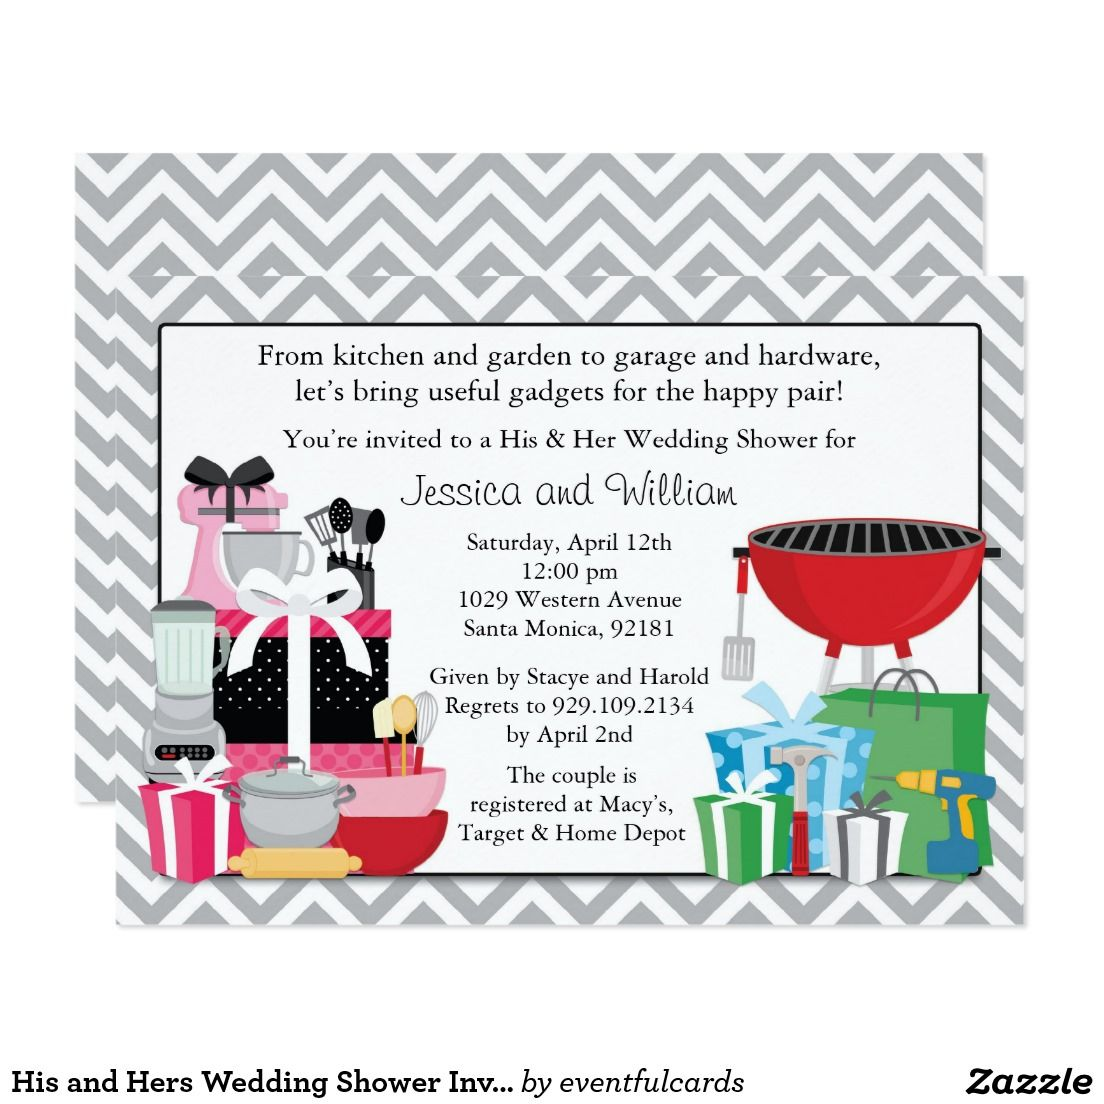 Do Your Own Wedding Invitations: His And Hers Wedding Shower Invitation